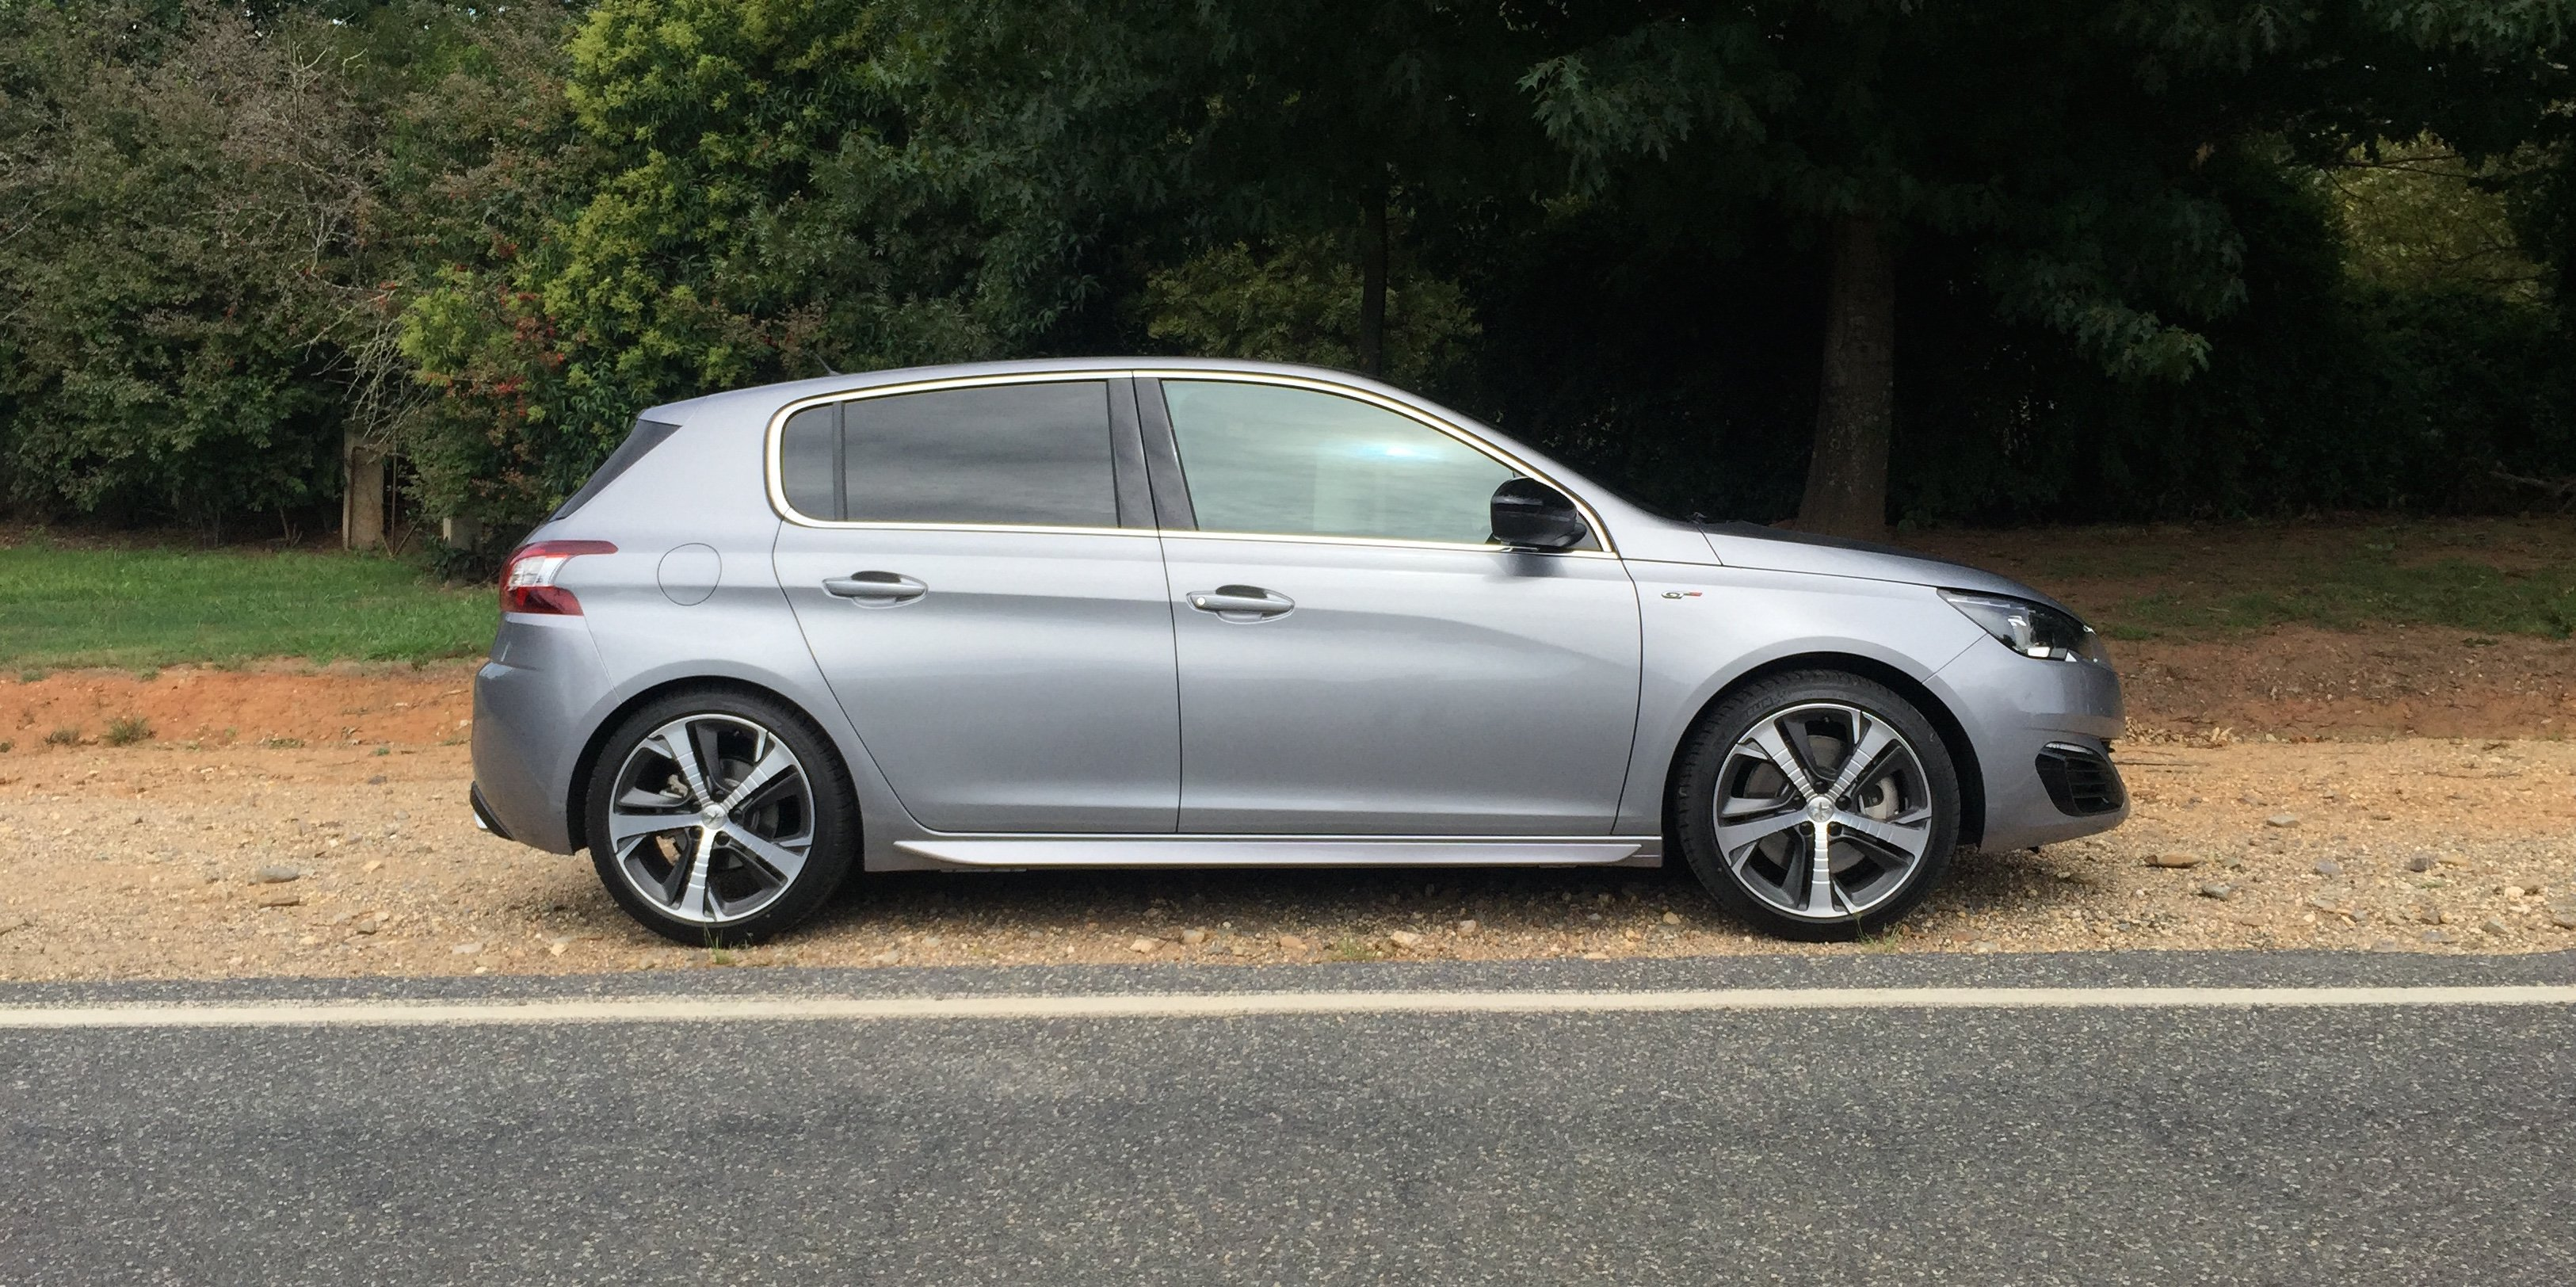 Mazda 3 2018 Review >> 2015 Peugeot 308 GT Review - photos | CarAdvice